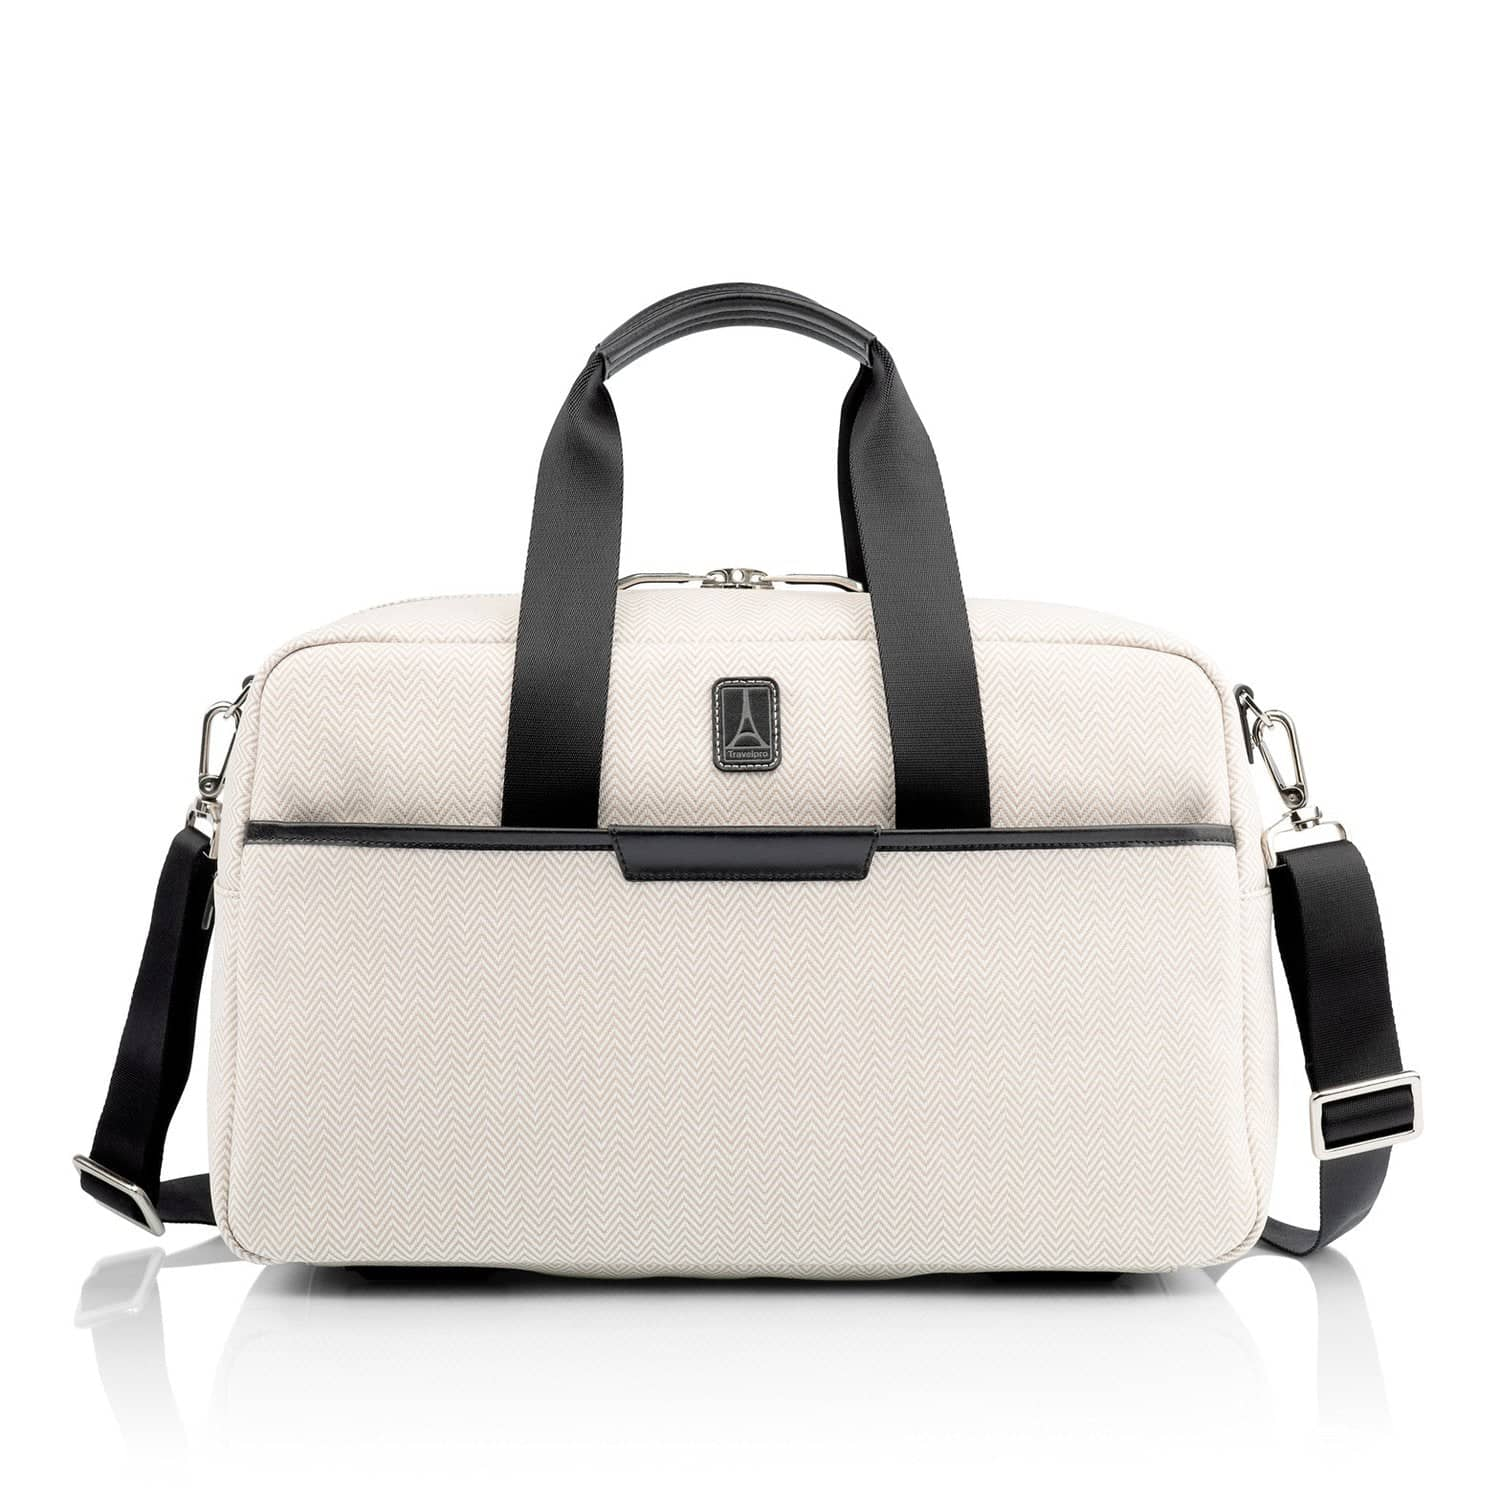 Travelpro x Travel + Leisure Underseat Tote